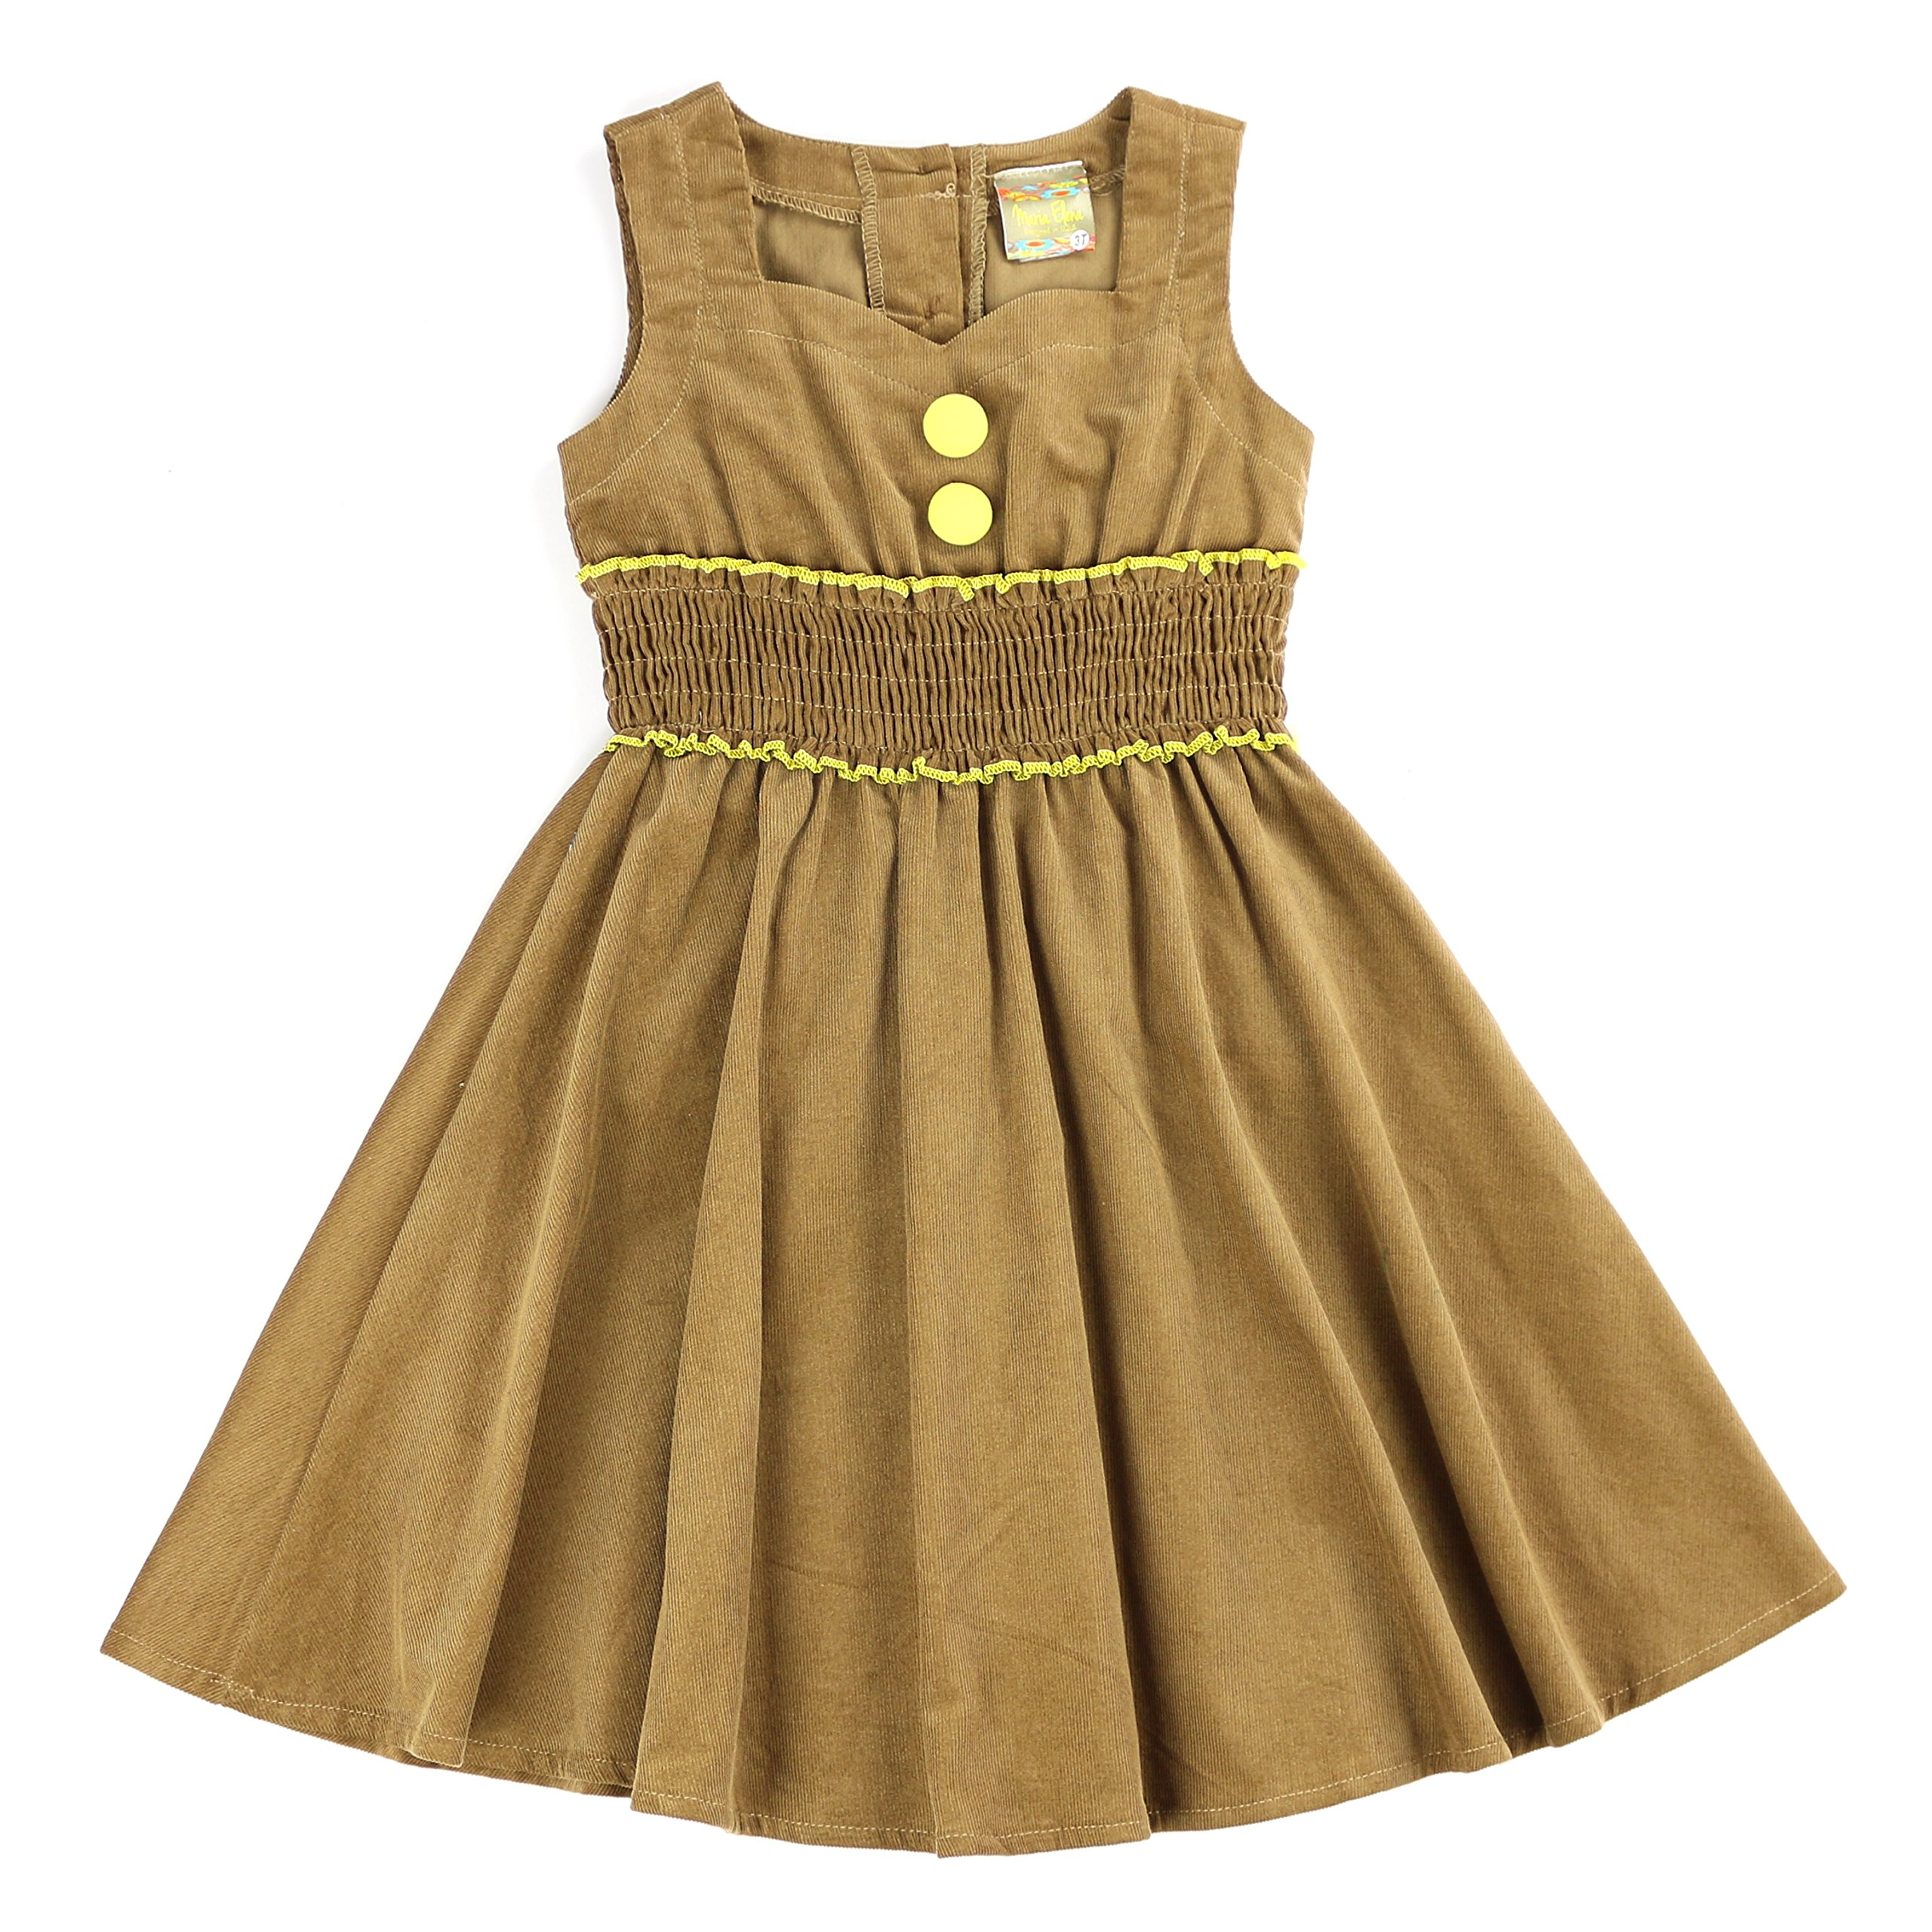 MARIA ELENA - Toddlers and Girls Stylish Vintage Classy Audrey Sweetheart Collar Dress in Camel Fine Wale Corduroy 3T